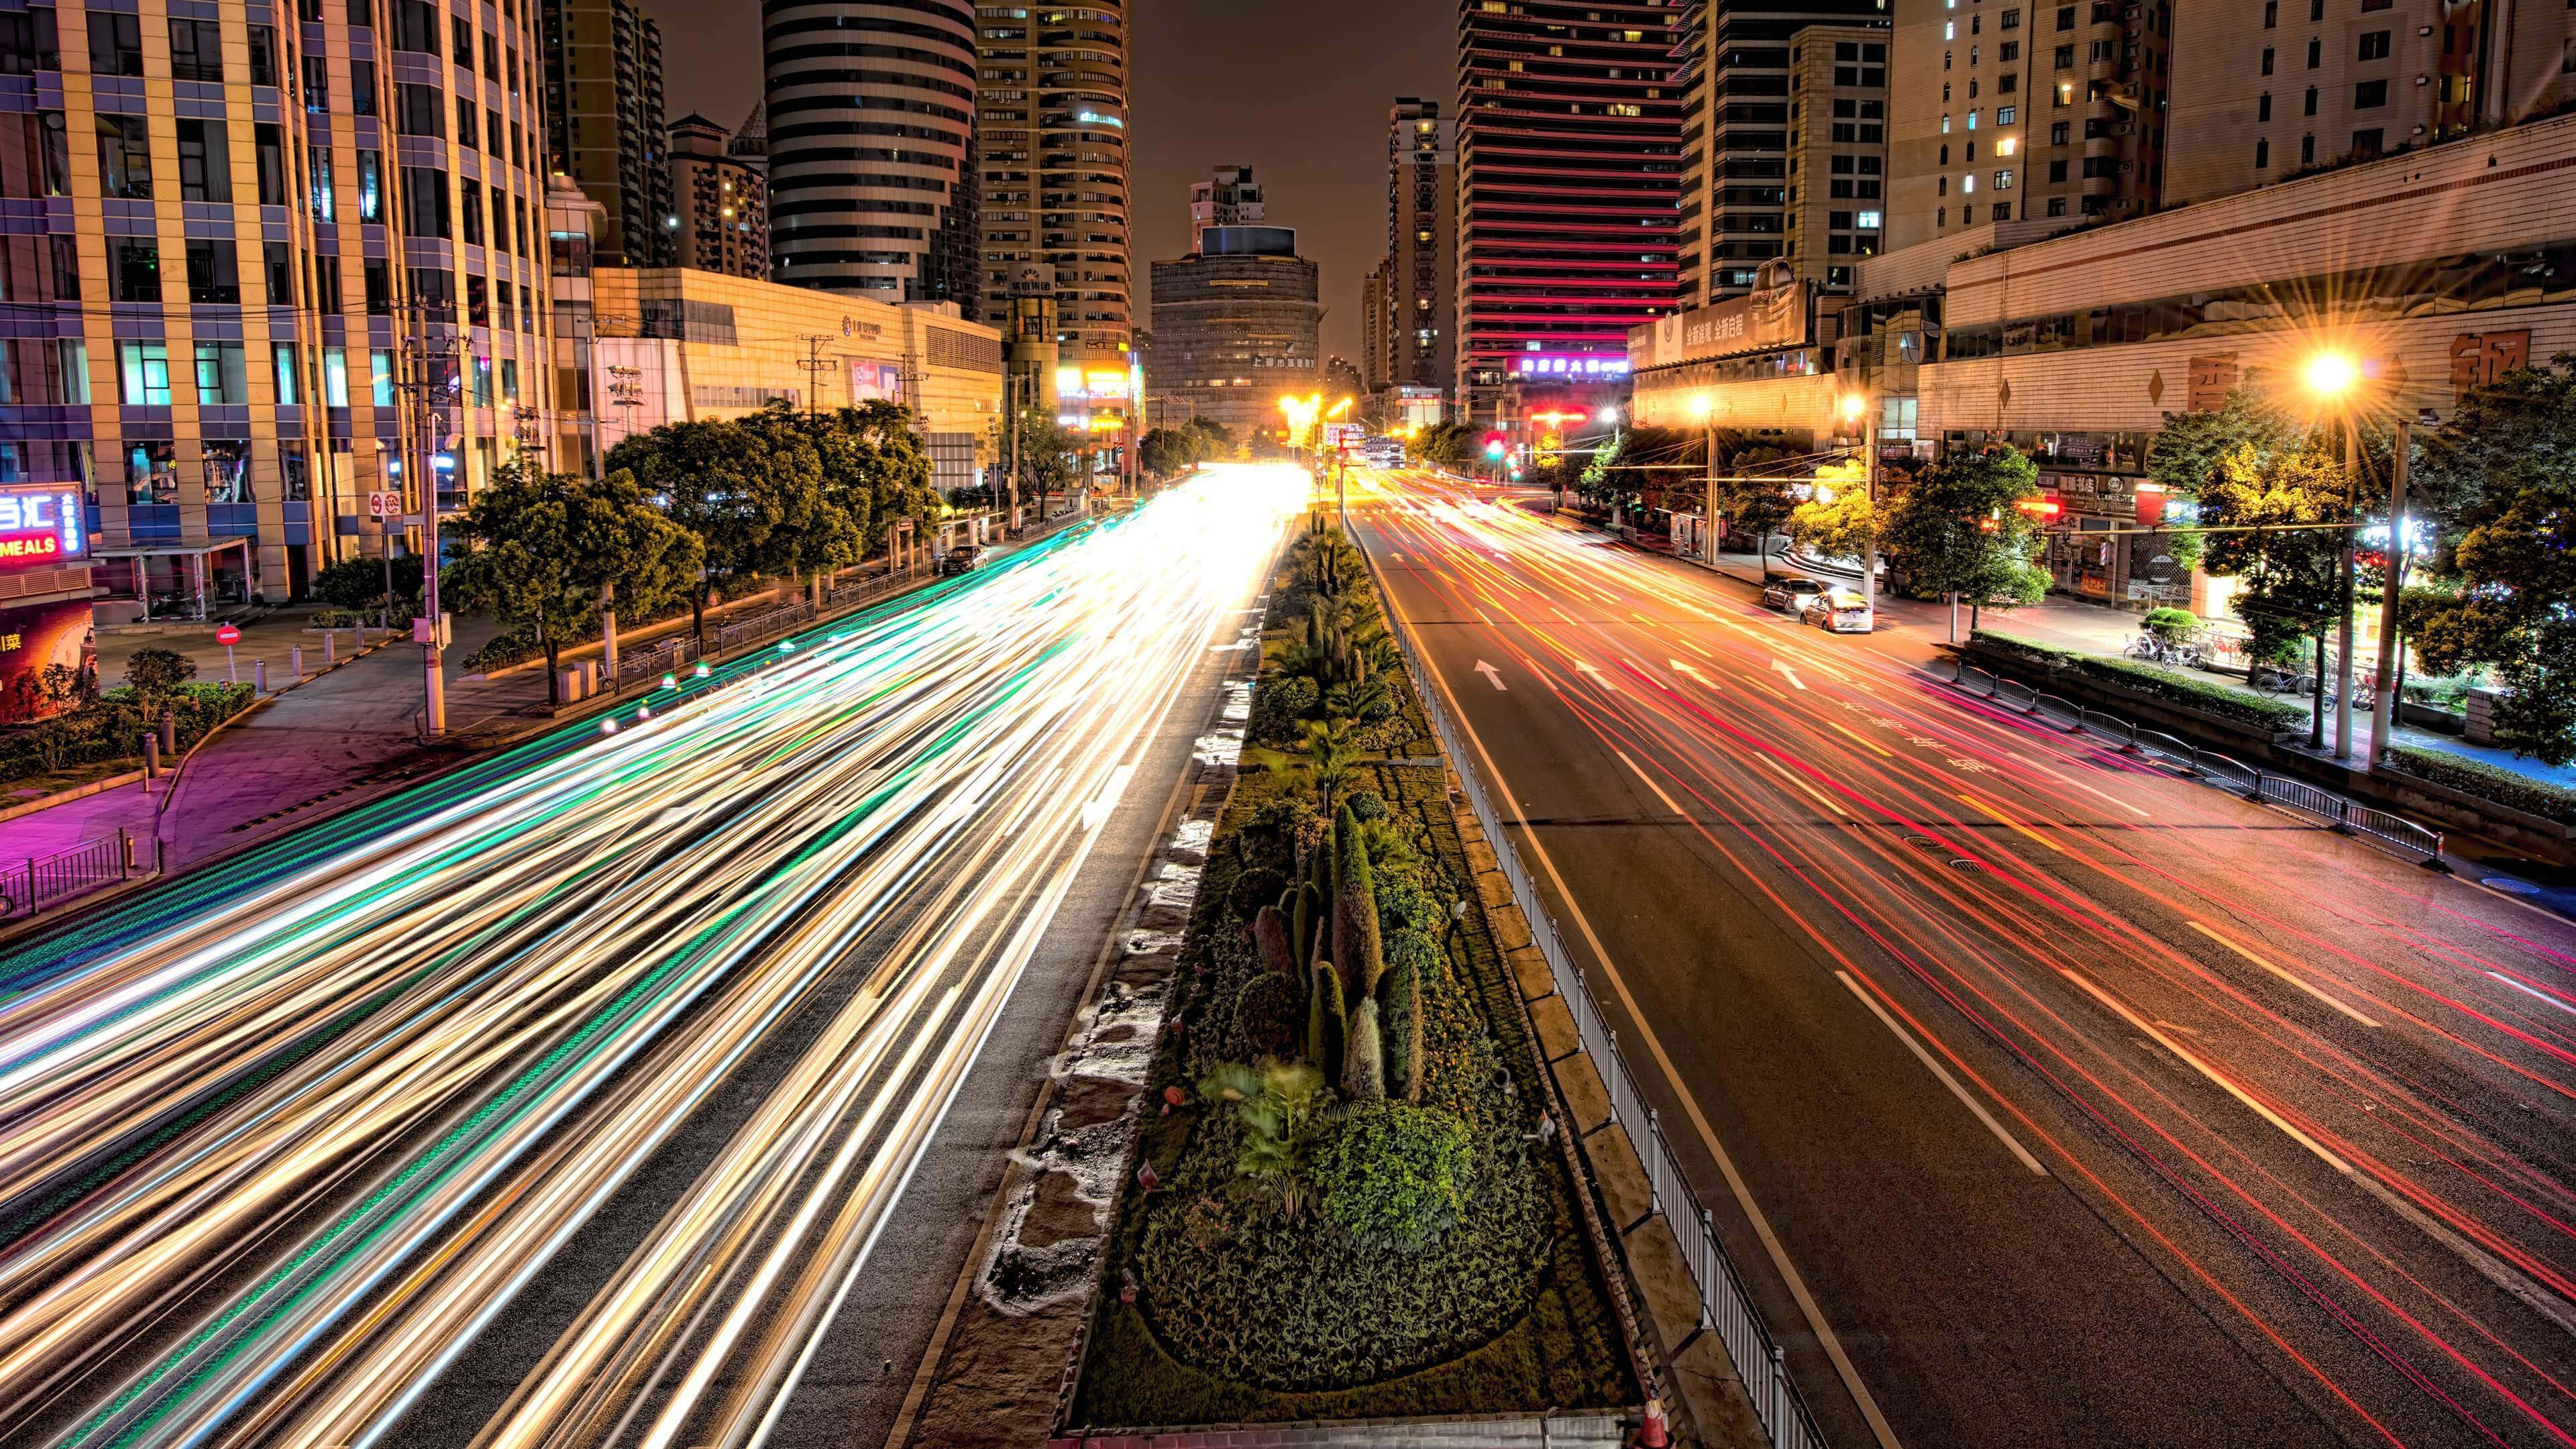 Download Busy Road in Shanghai at Night HD wallpaper for 4K 3840 x ...: hdwallpapers.net/preview/busy-road-in-shanghai-at-night-wallpaper...